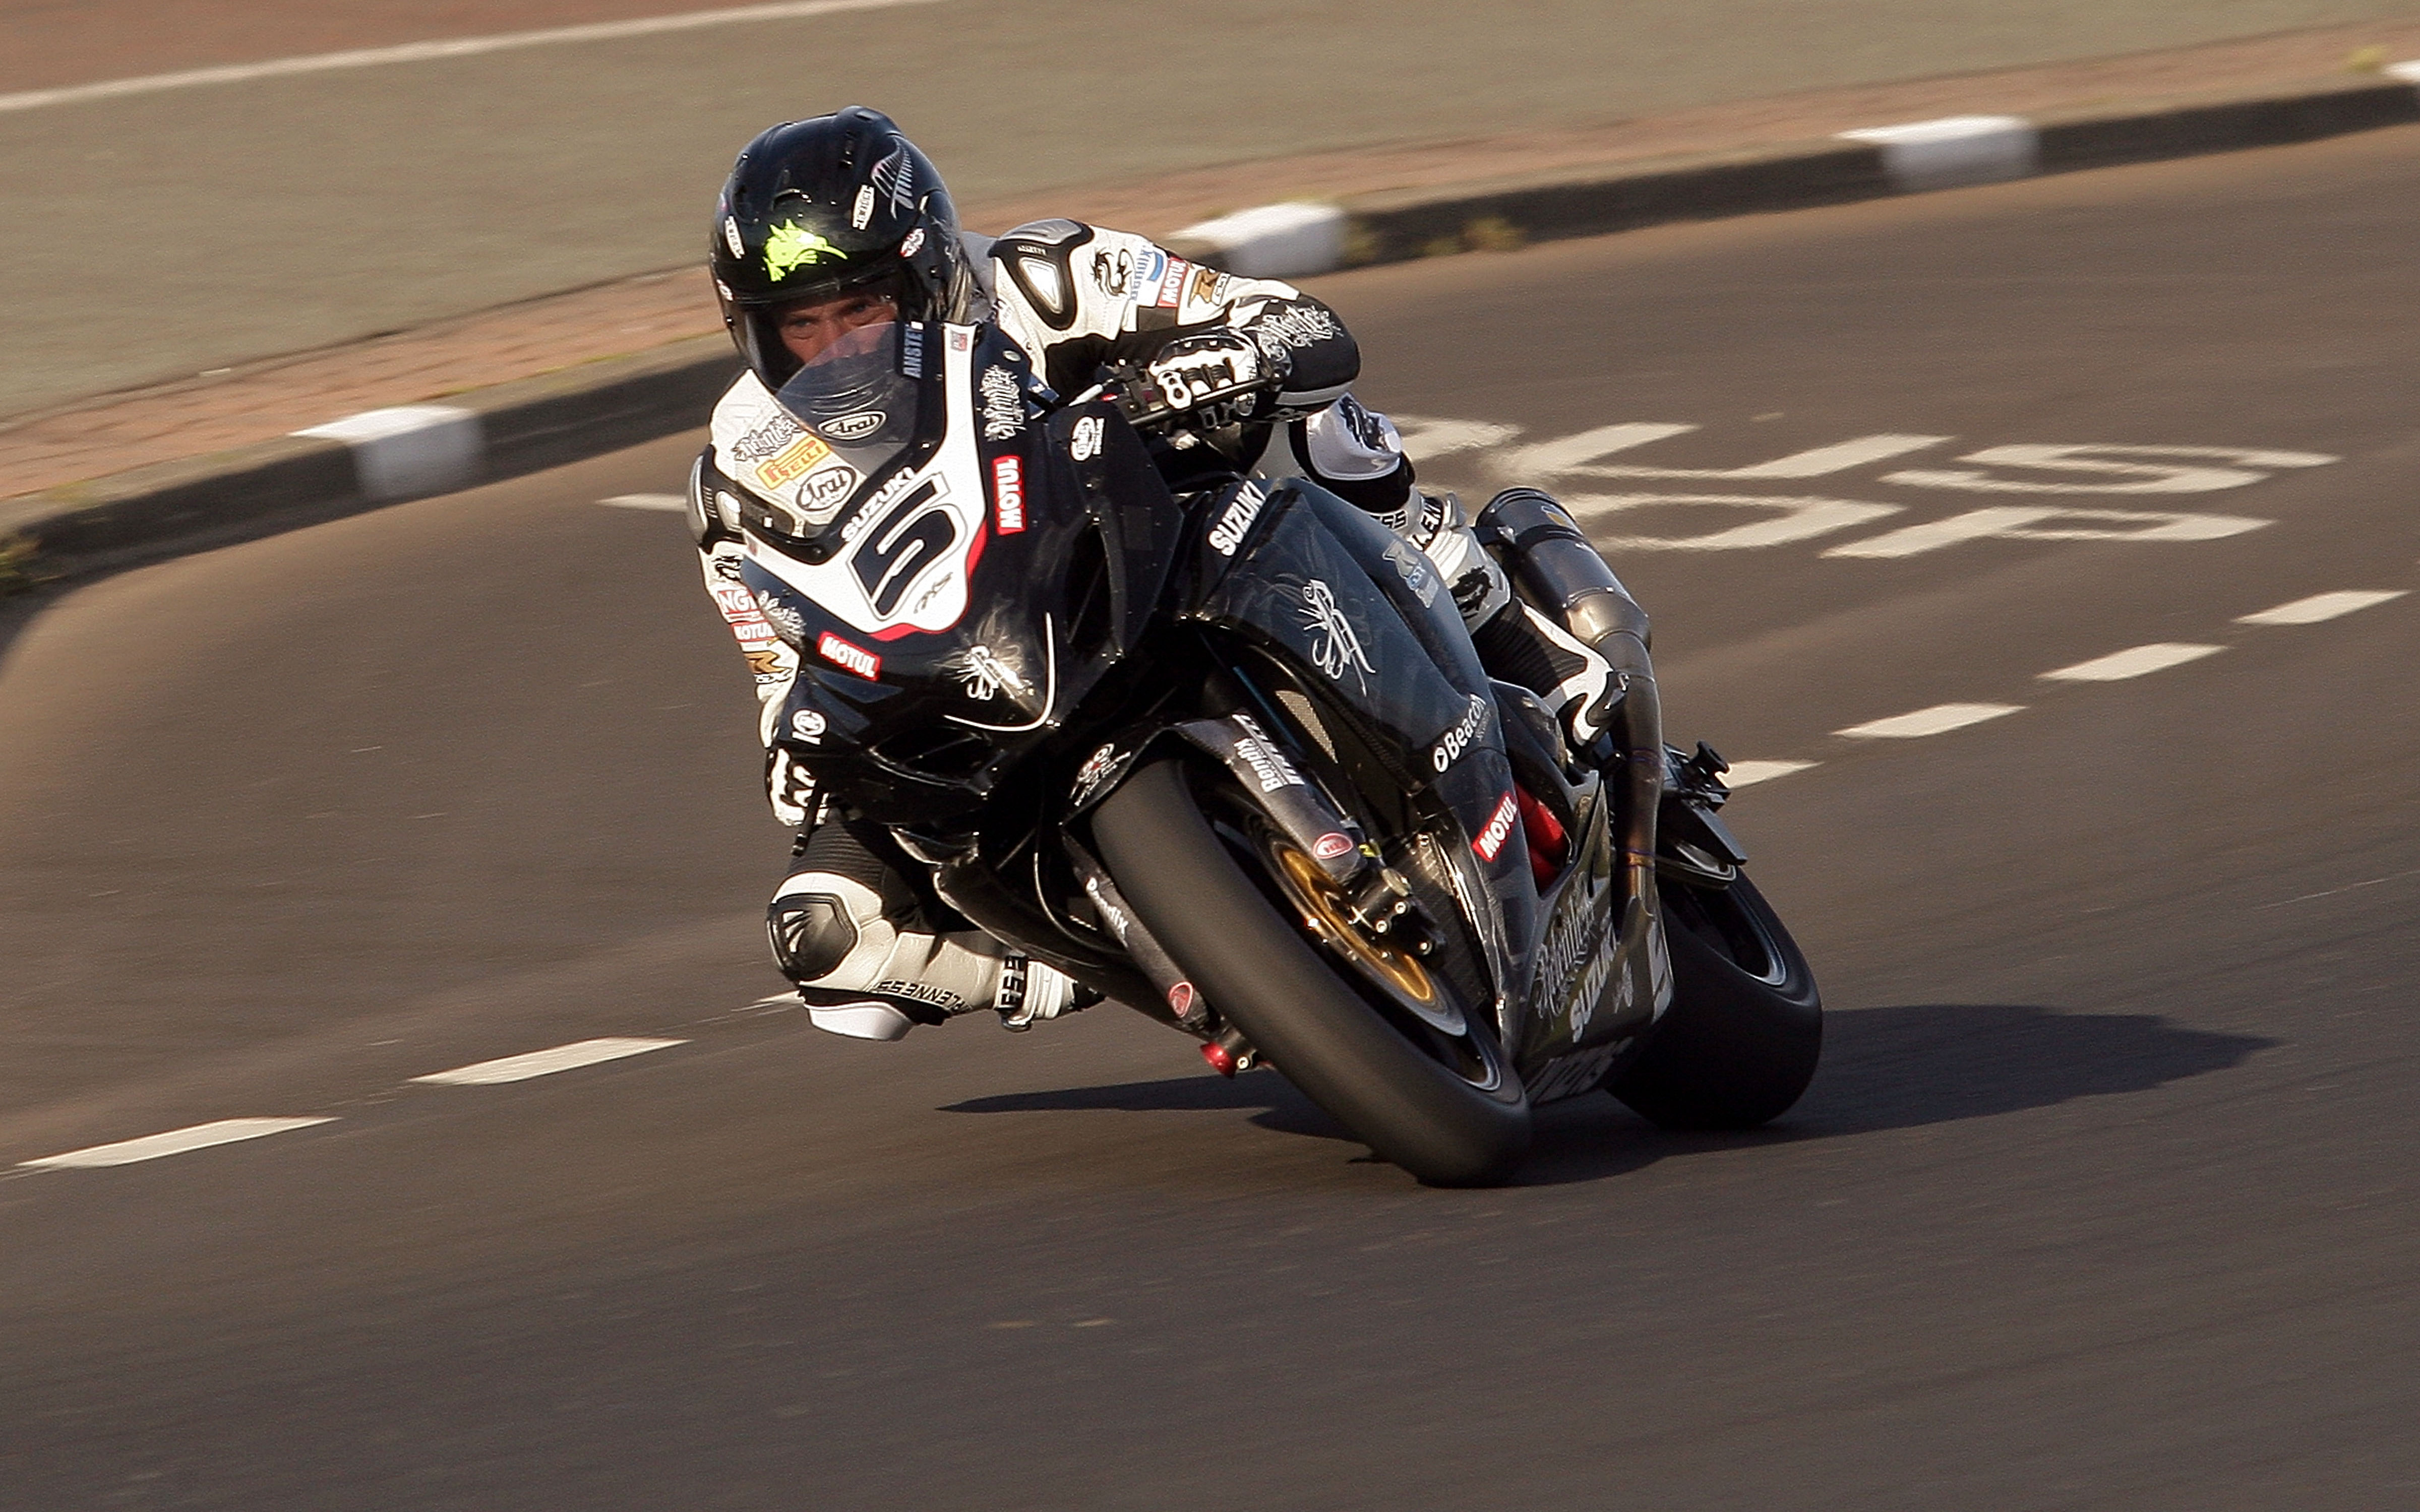 Northwest 200 road race . racer Bruce anstey